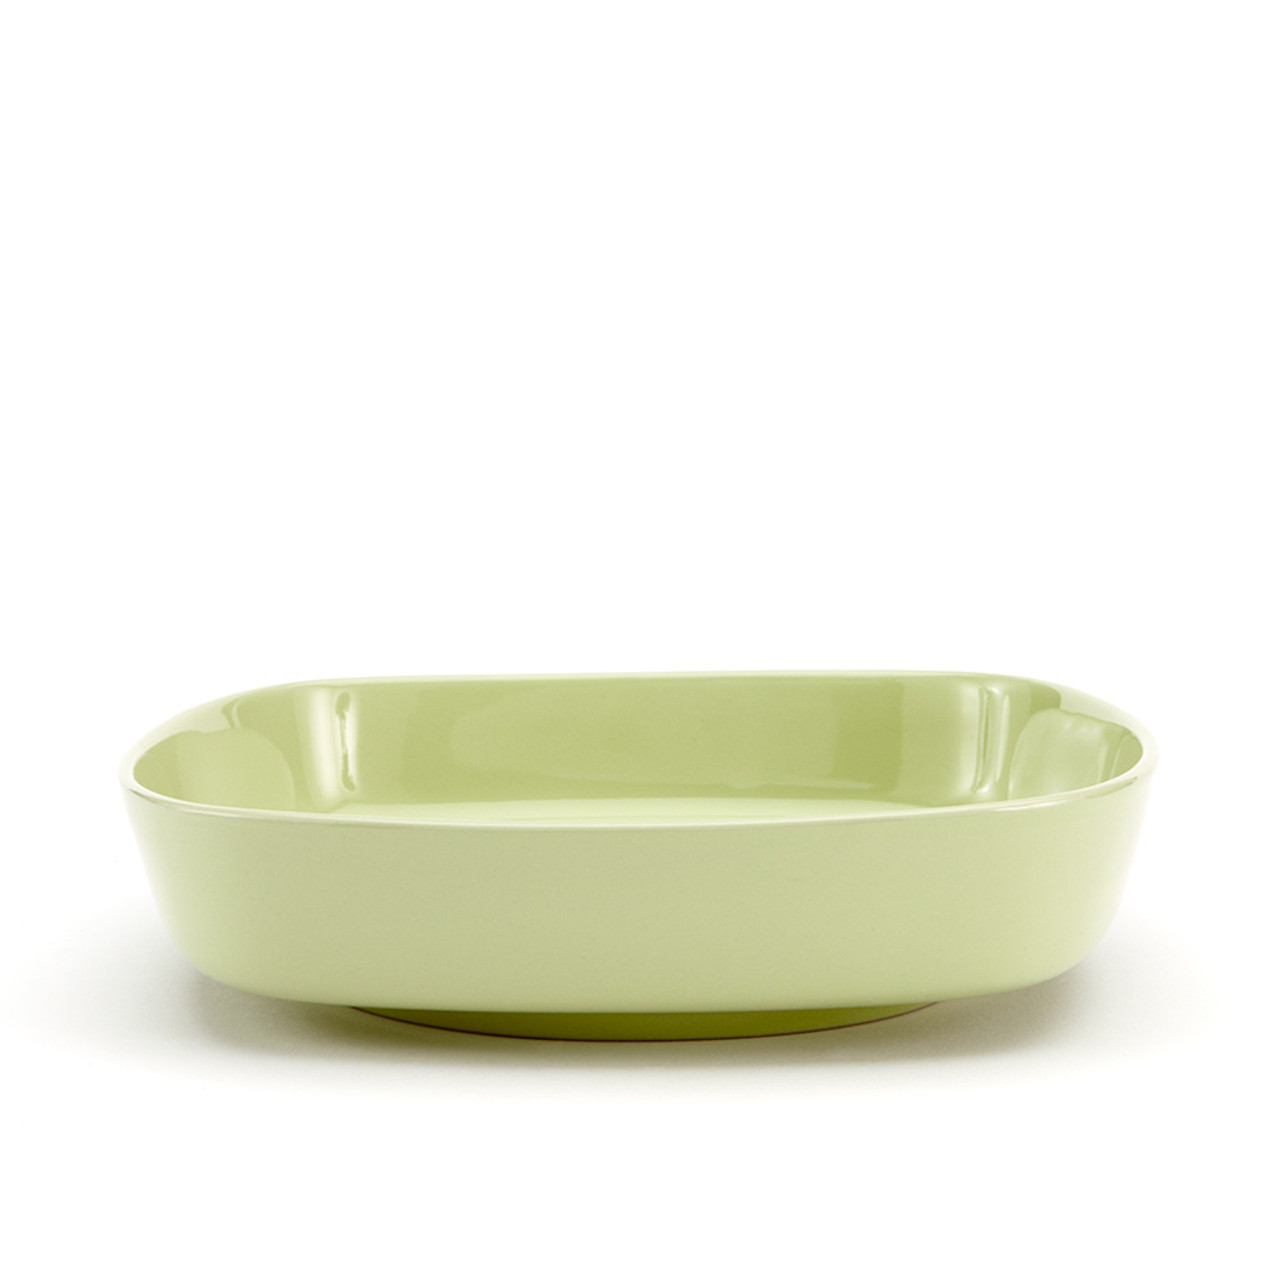 Karo - Light Green Pasta Bowl 4 piece set